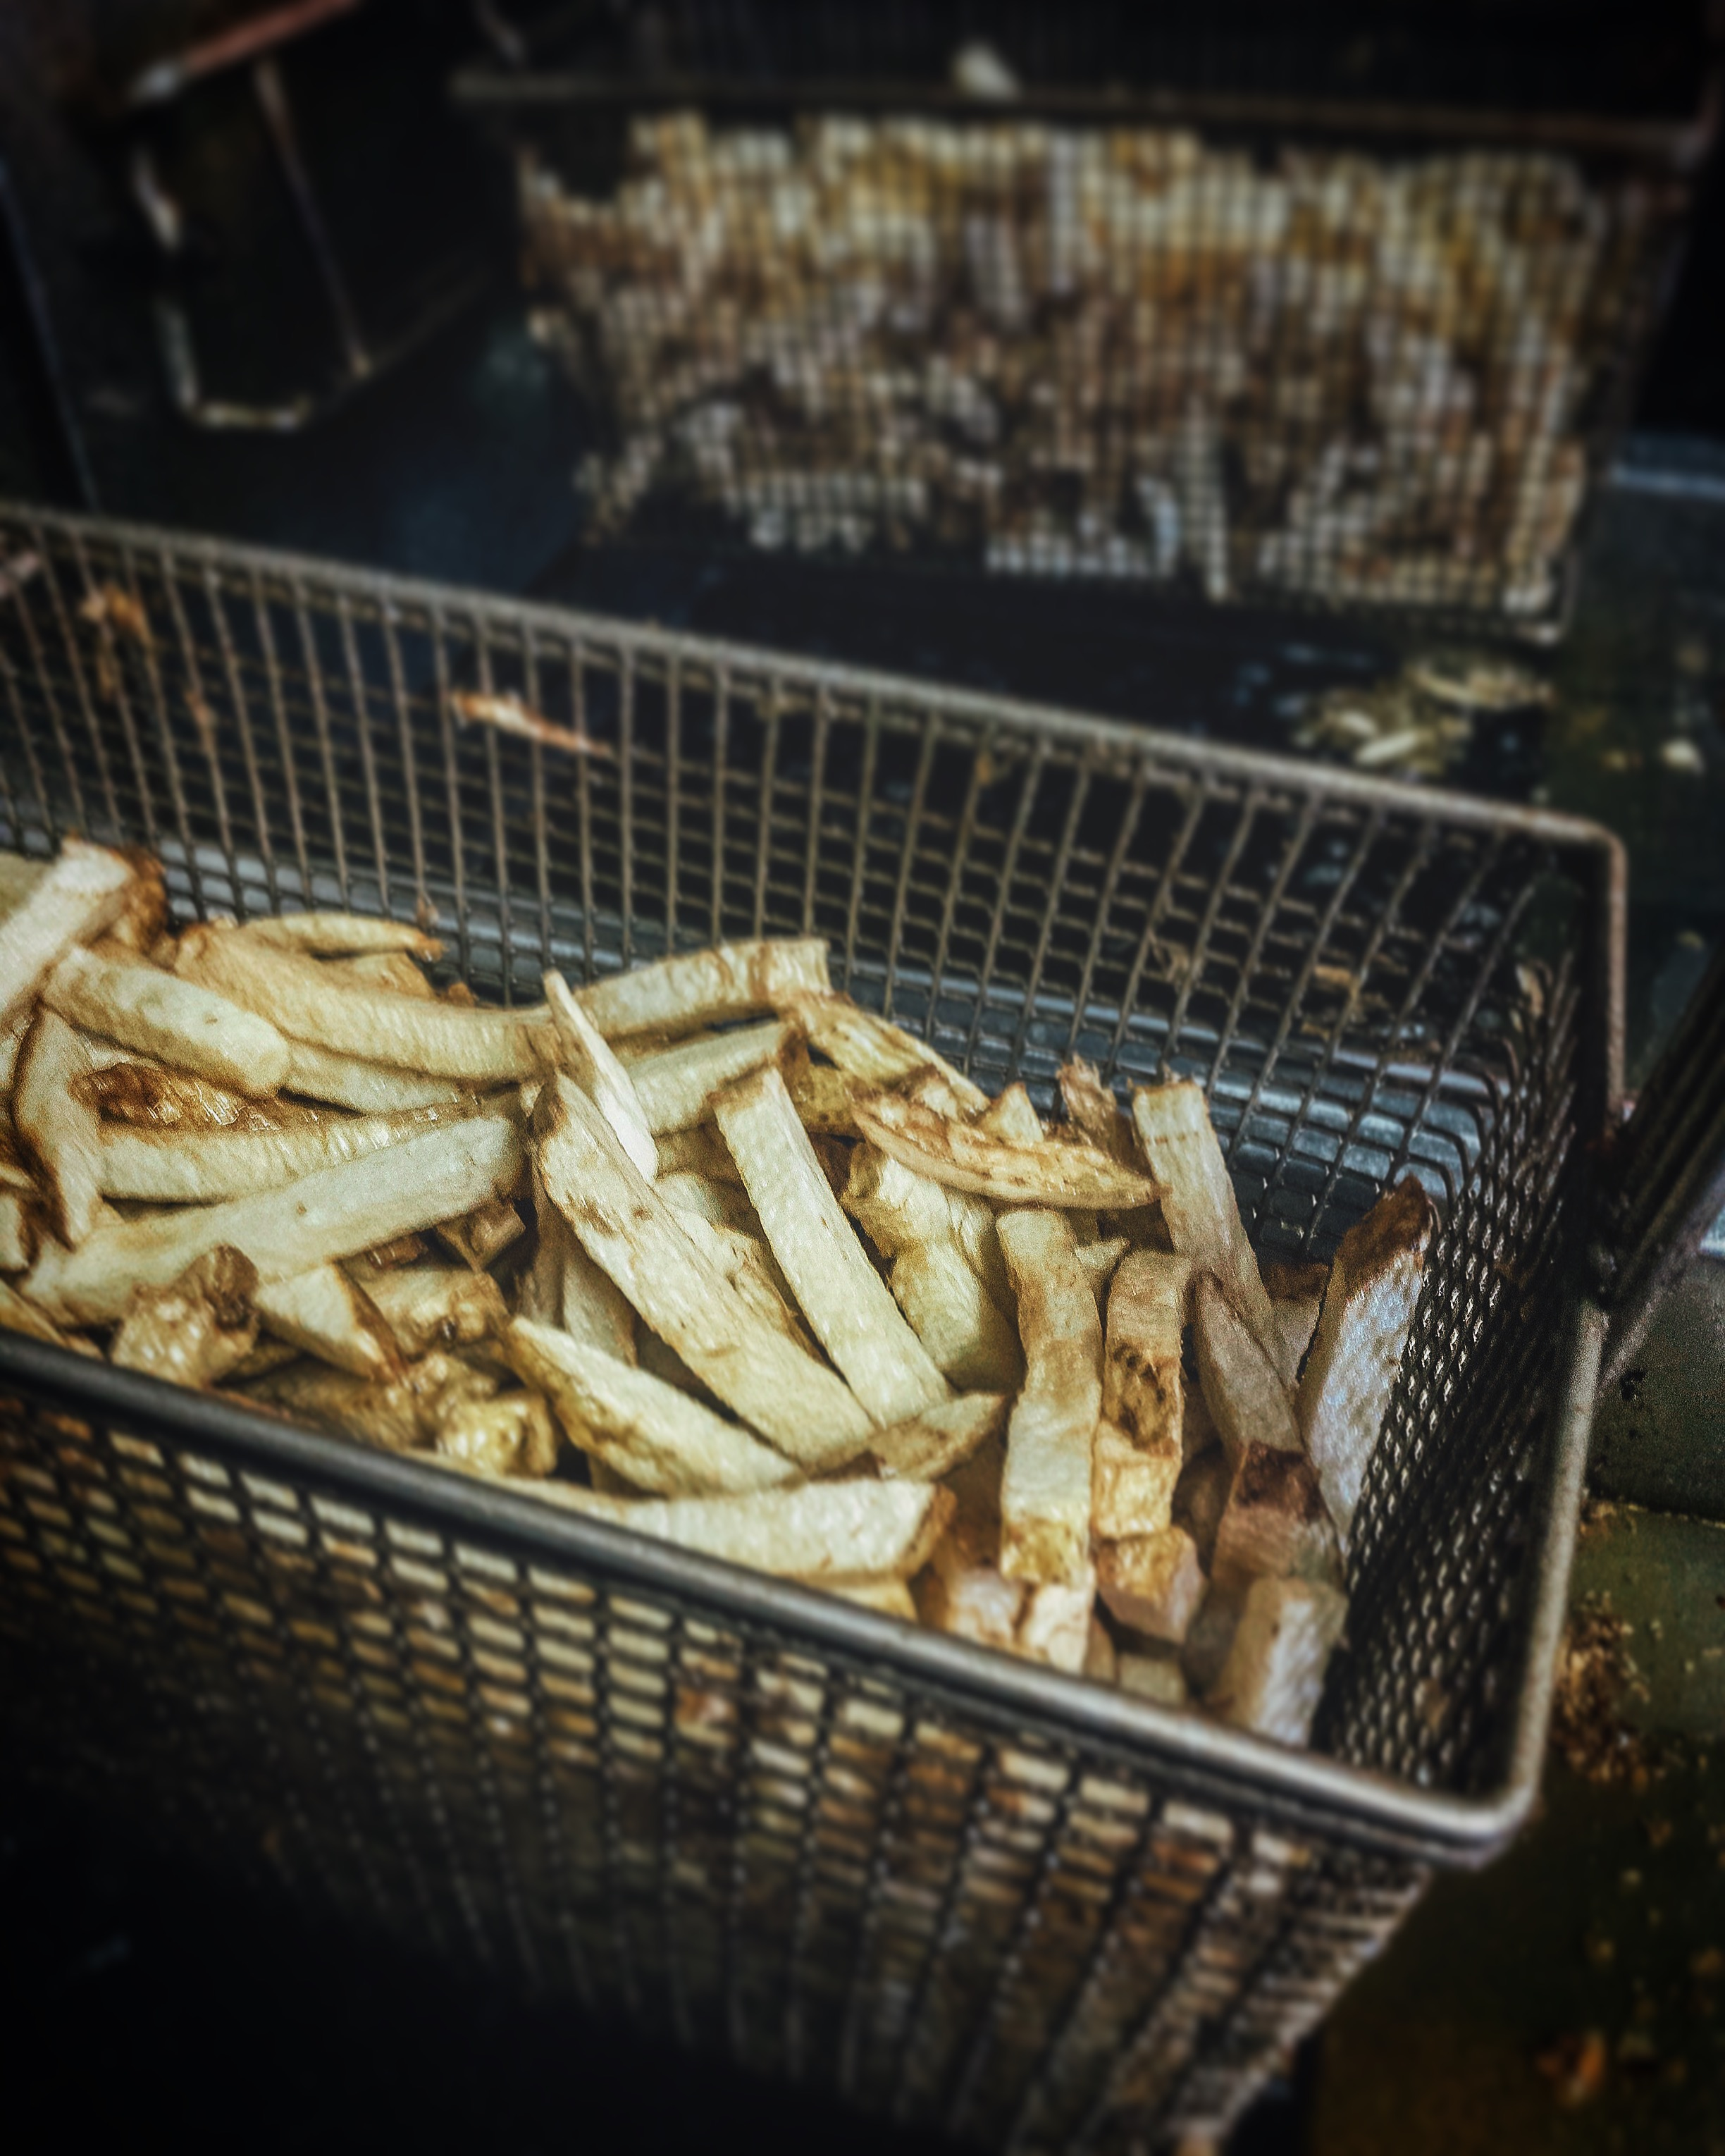 A basket of Blanched Fresh Cut Fries.